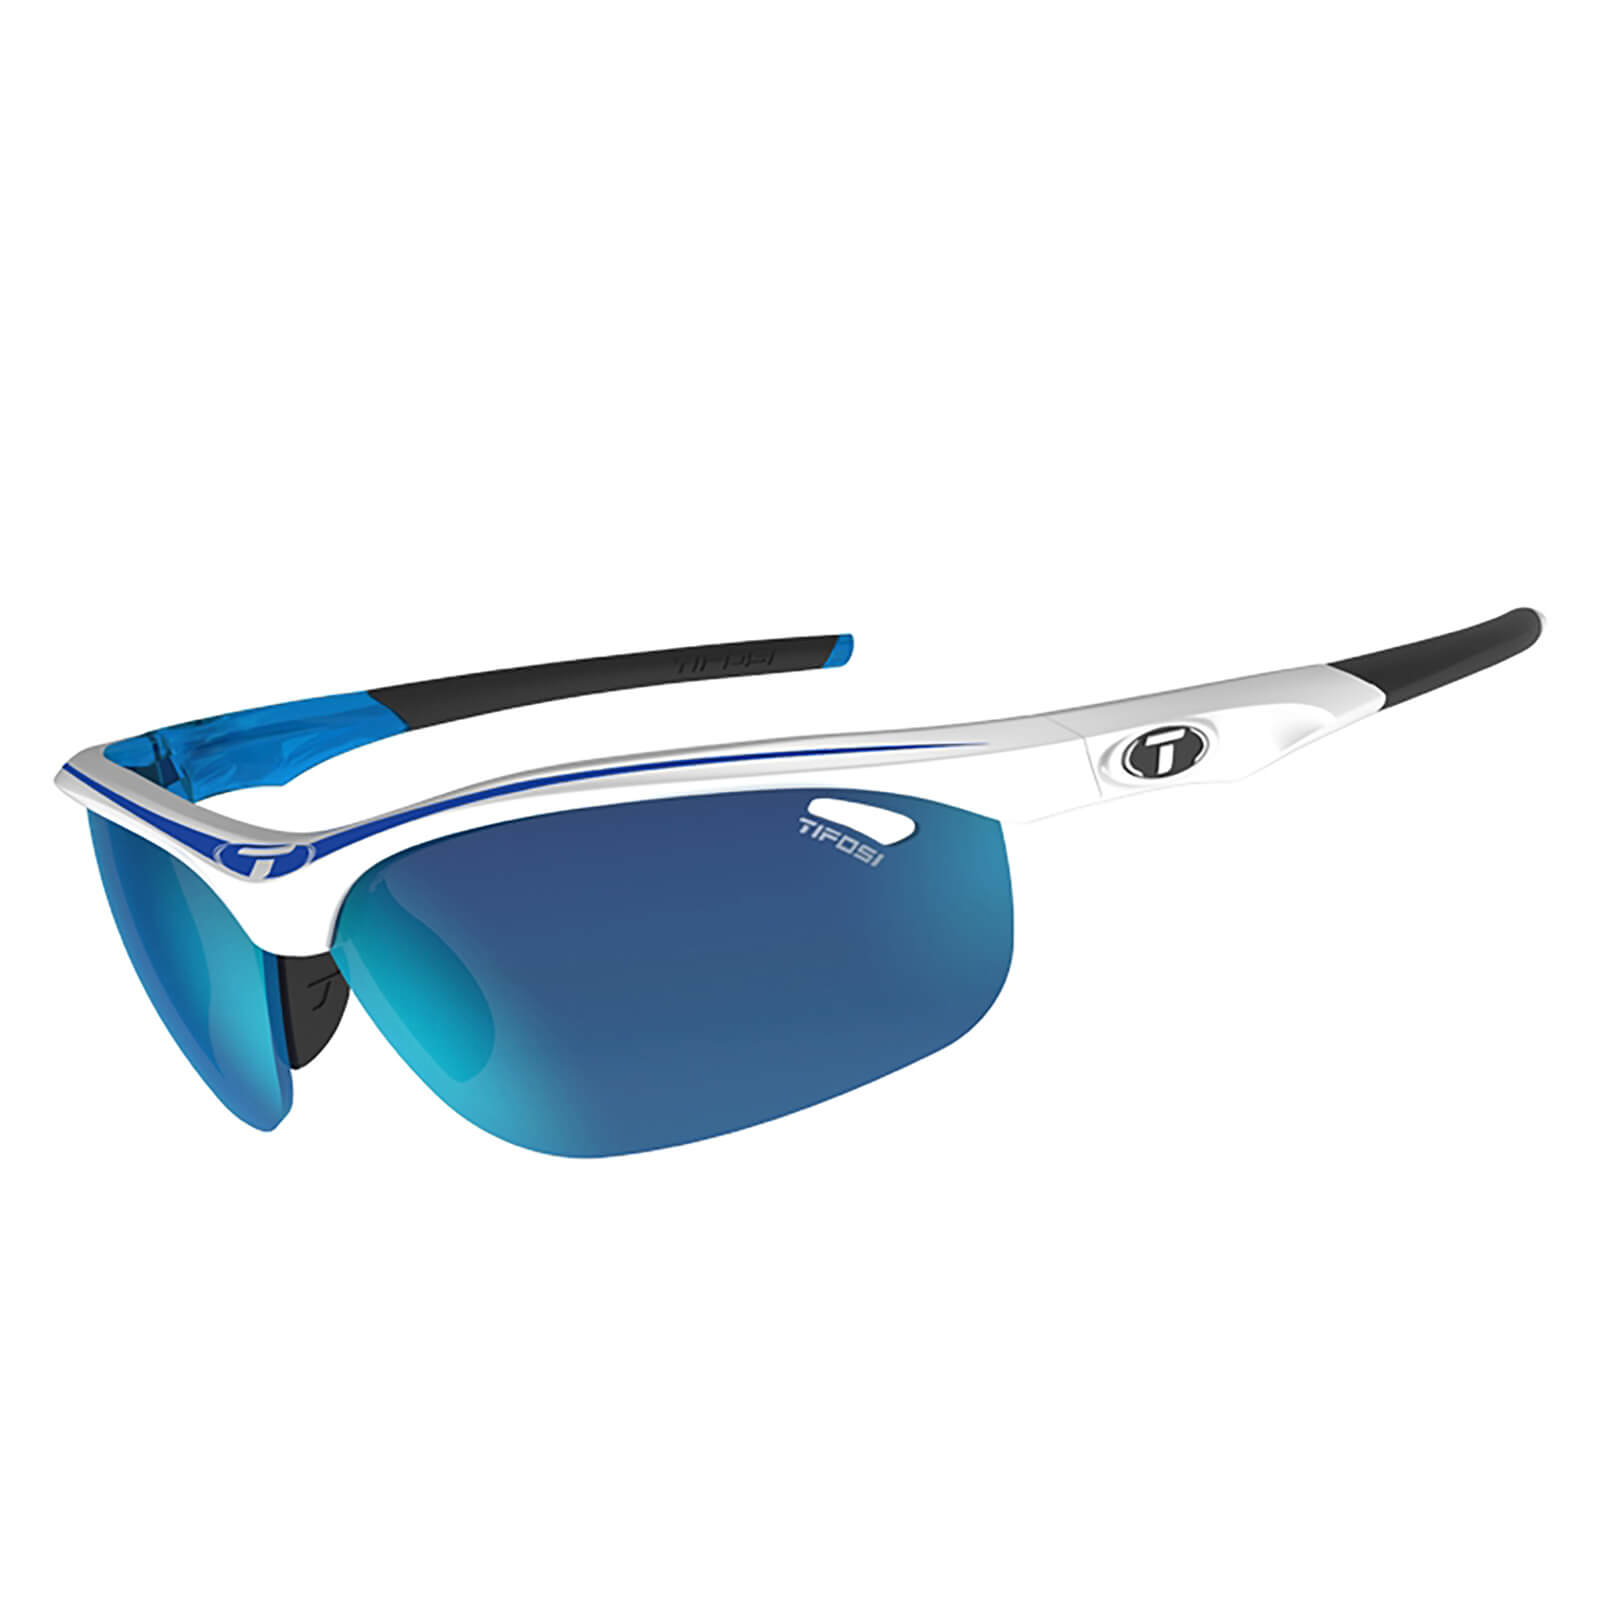 Tifosi Veloce Sunglasses - Race Blue/Clarion Blue